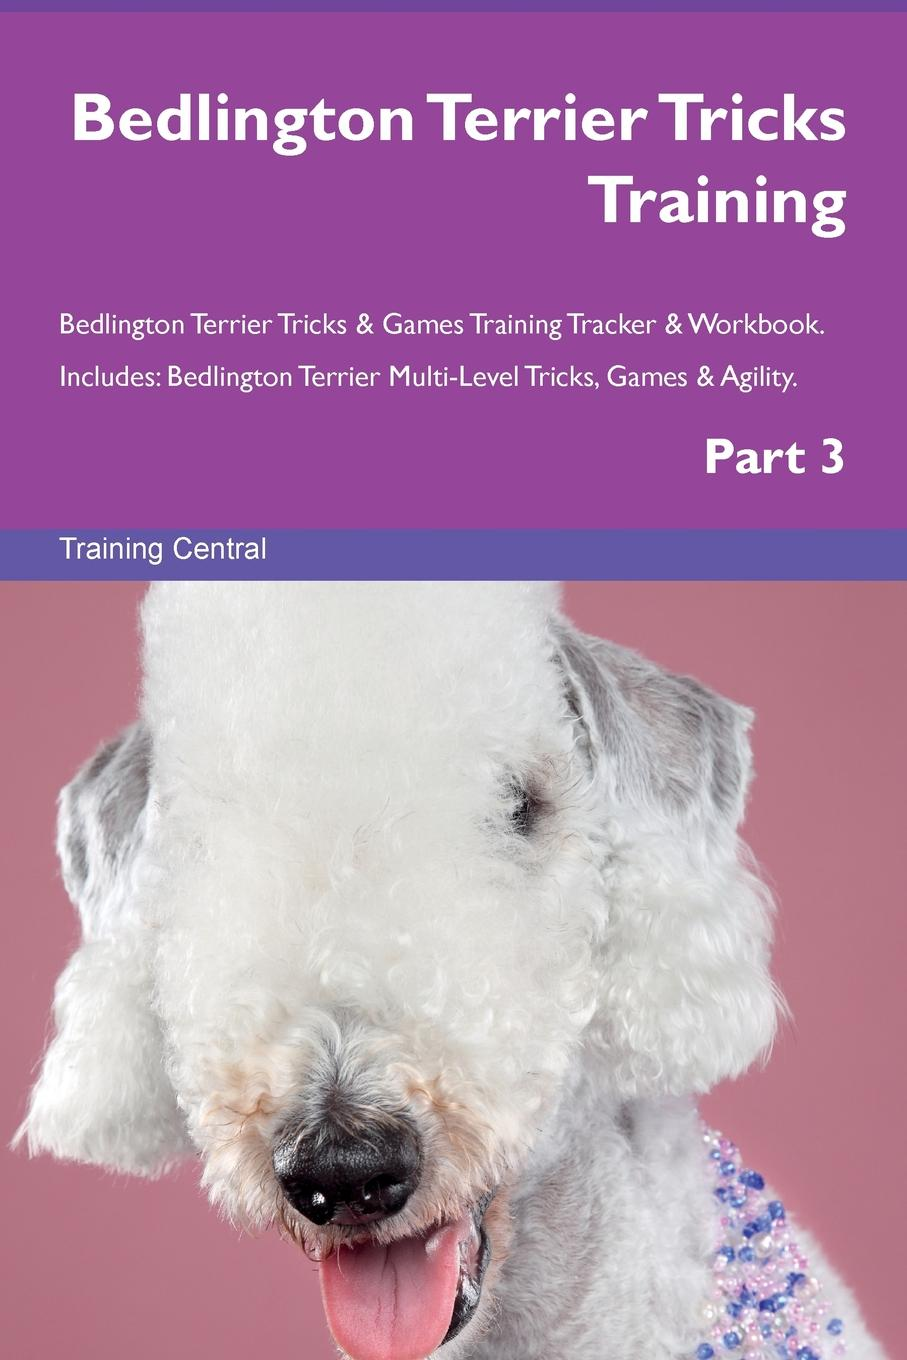 Training Central Bedlington Terrier Tricks Training Bedlington Terrier Tricks . Games Training Tracker . Workbook. Includes. Bedlington Terrier Multi-Level Tricks, Games . Agility. Part 3 this book loves you